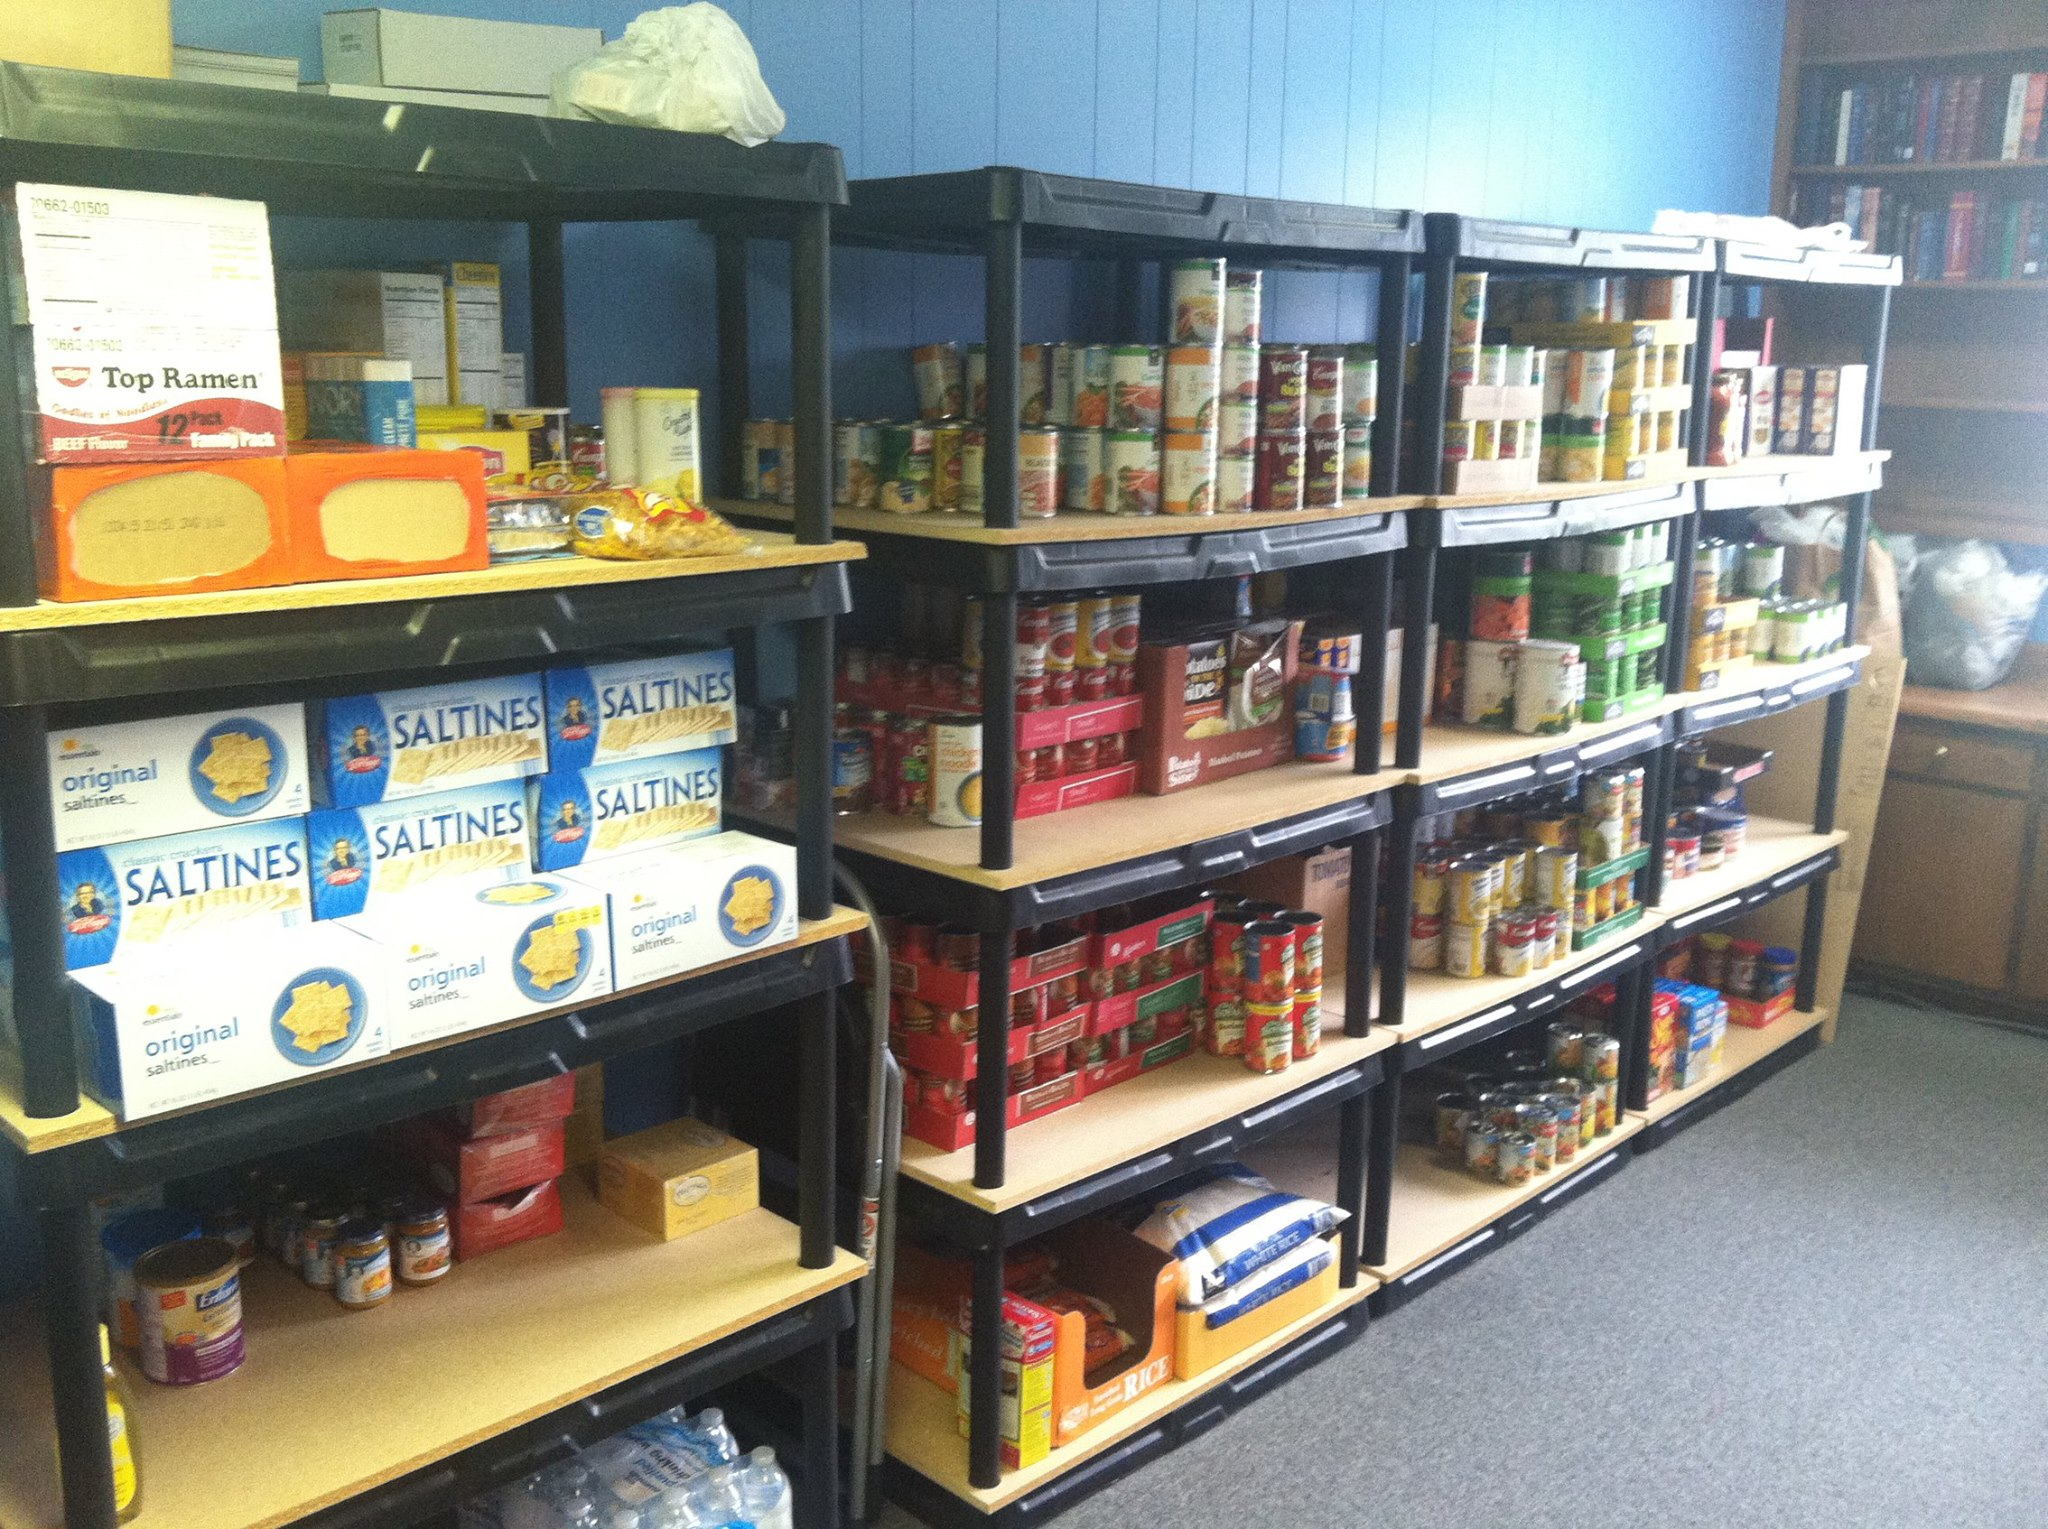 Food Pantry - a wide variety of non-perishable food items: canned meats, canned vegetables and fruits, rice, soups, crackers, and more, the pantry is open Tuesday from 9am to 2pm.